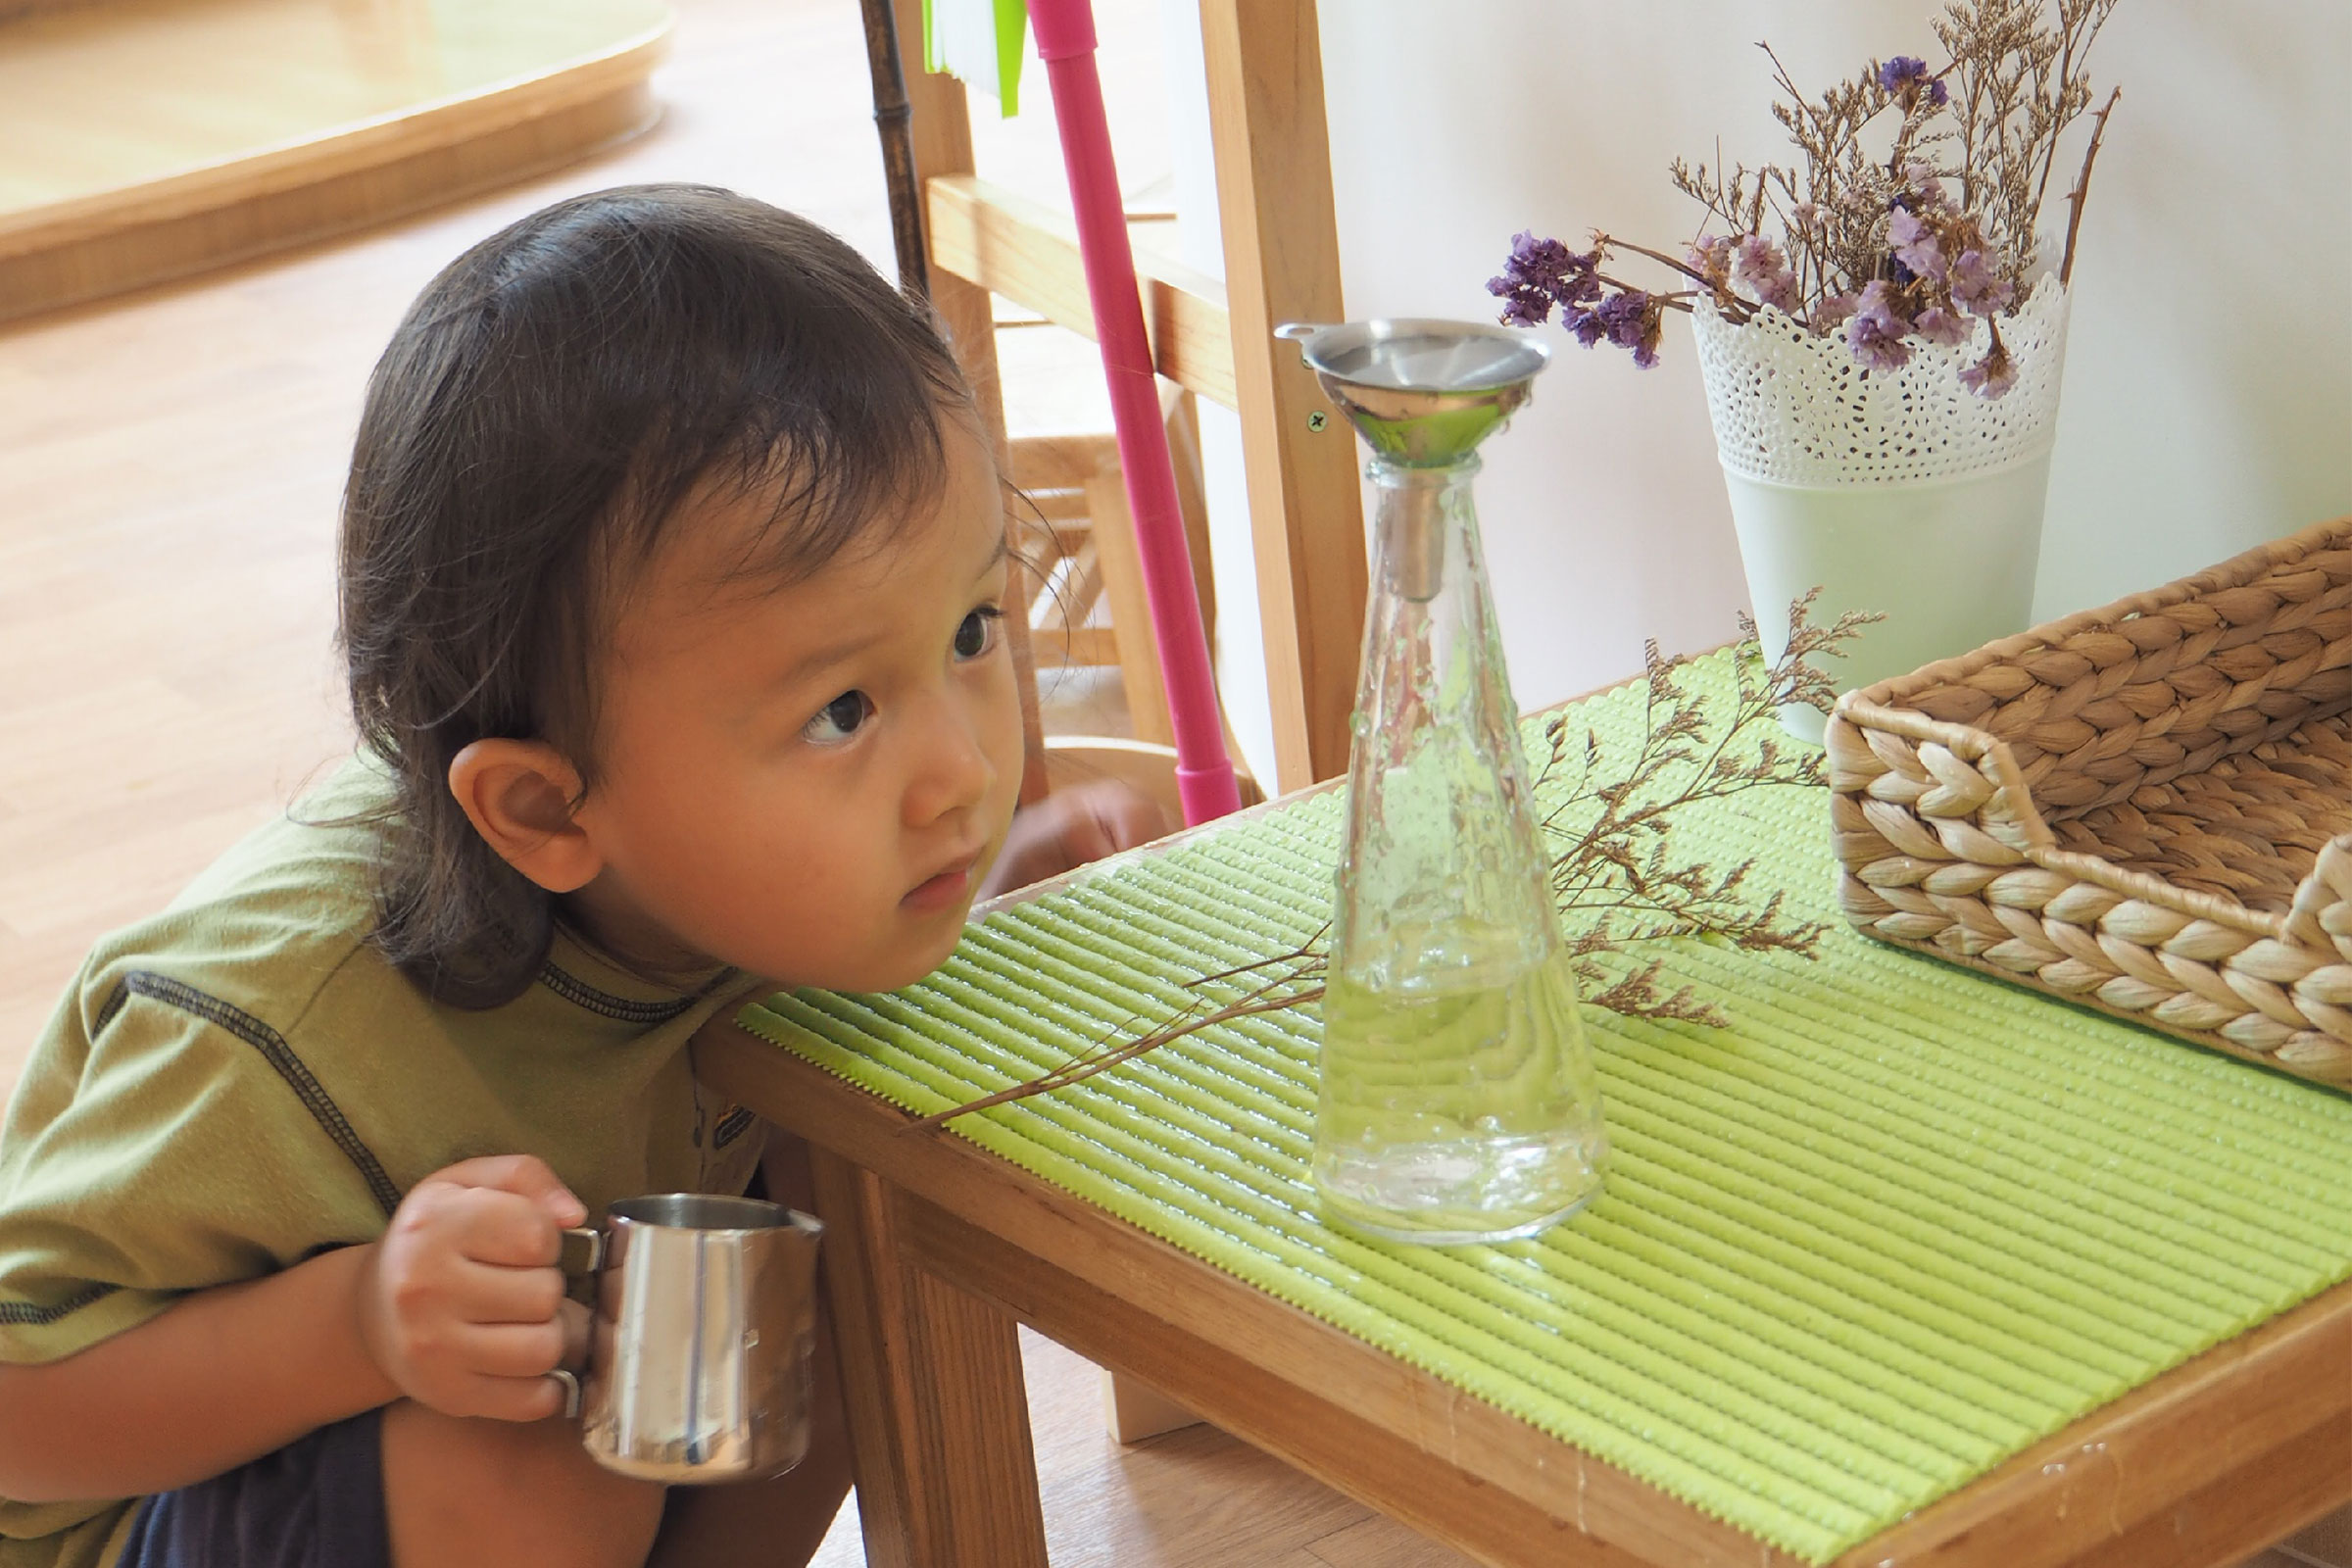 Toddler pouring activity in Montessori classroom